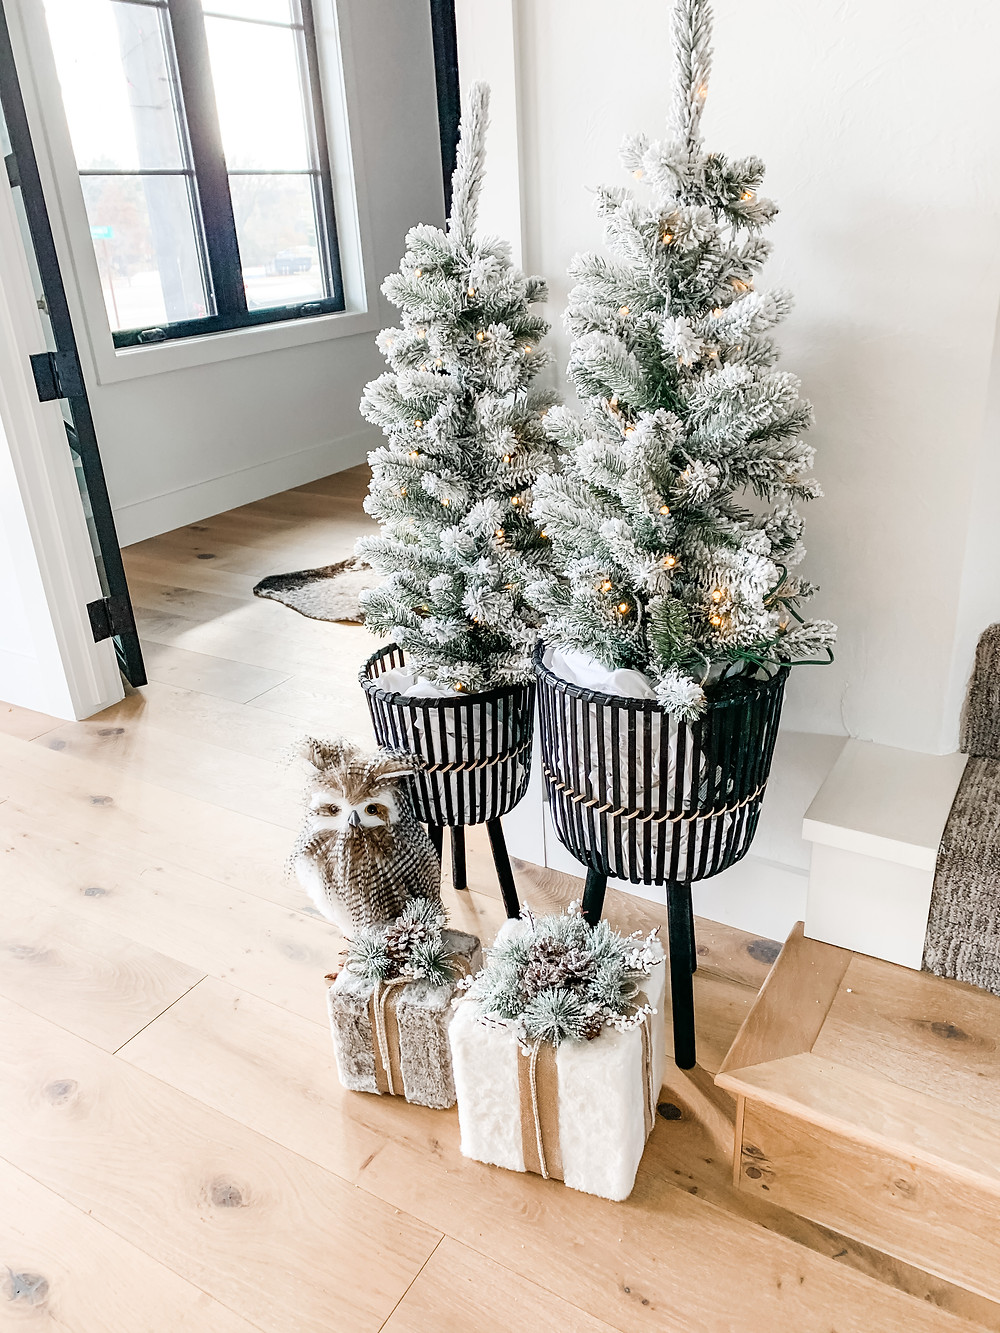 Christmas Trees in Modern Bohemian Black Plant Stands with Owl Decor and Faux Fur Present Box Decor